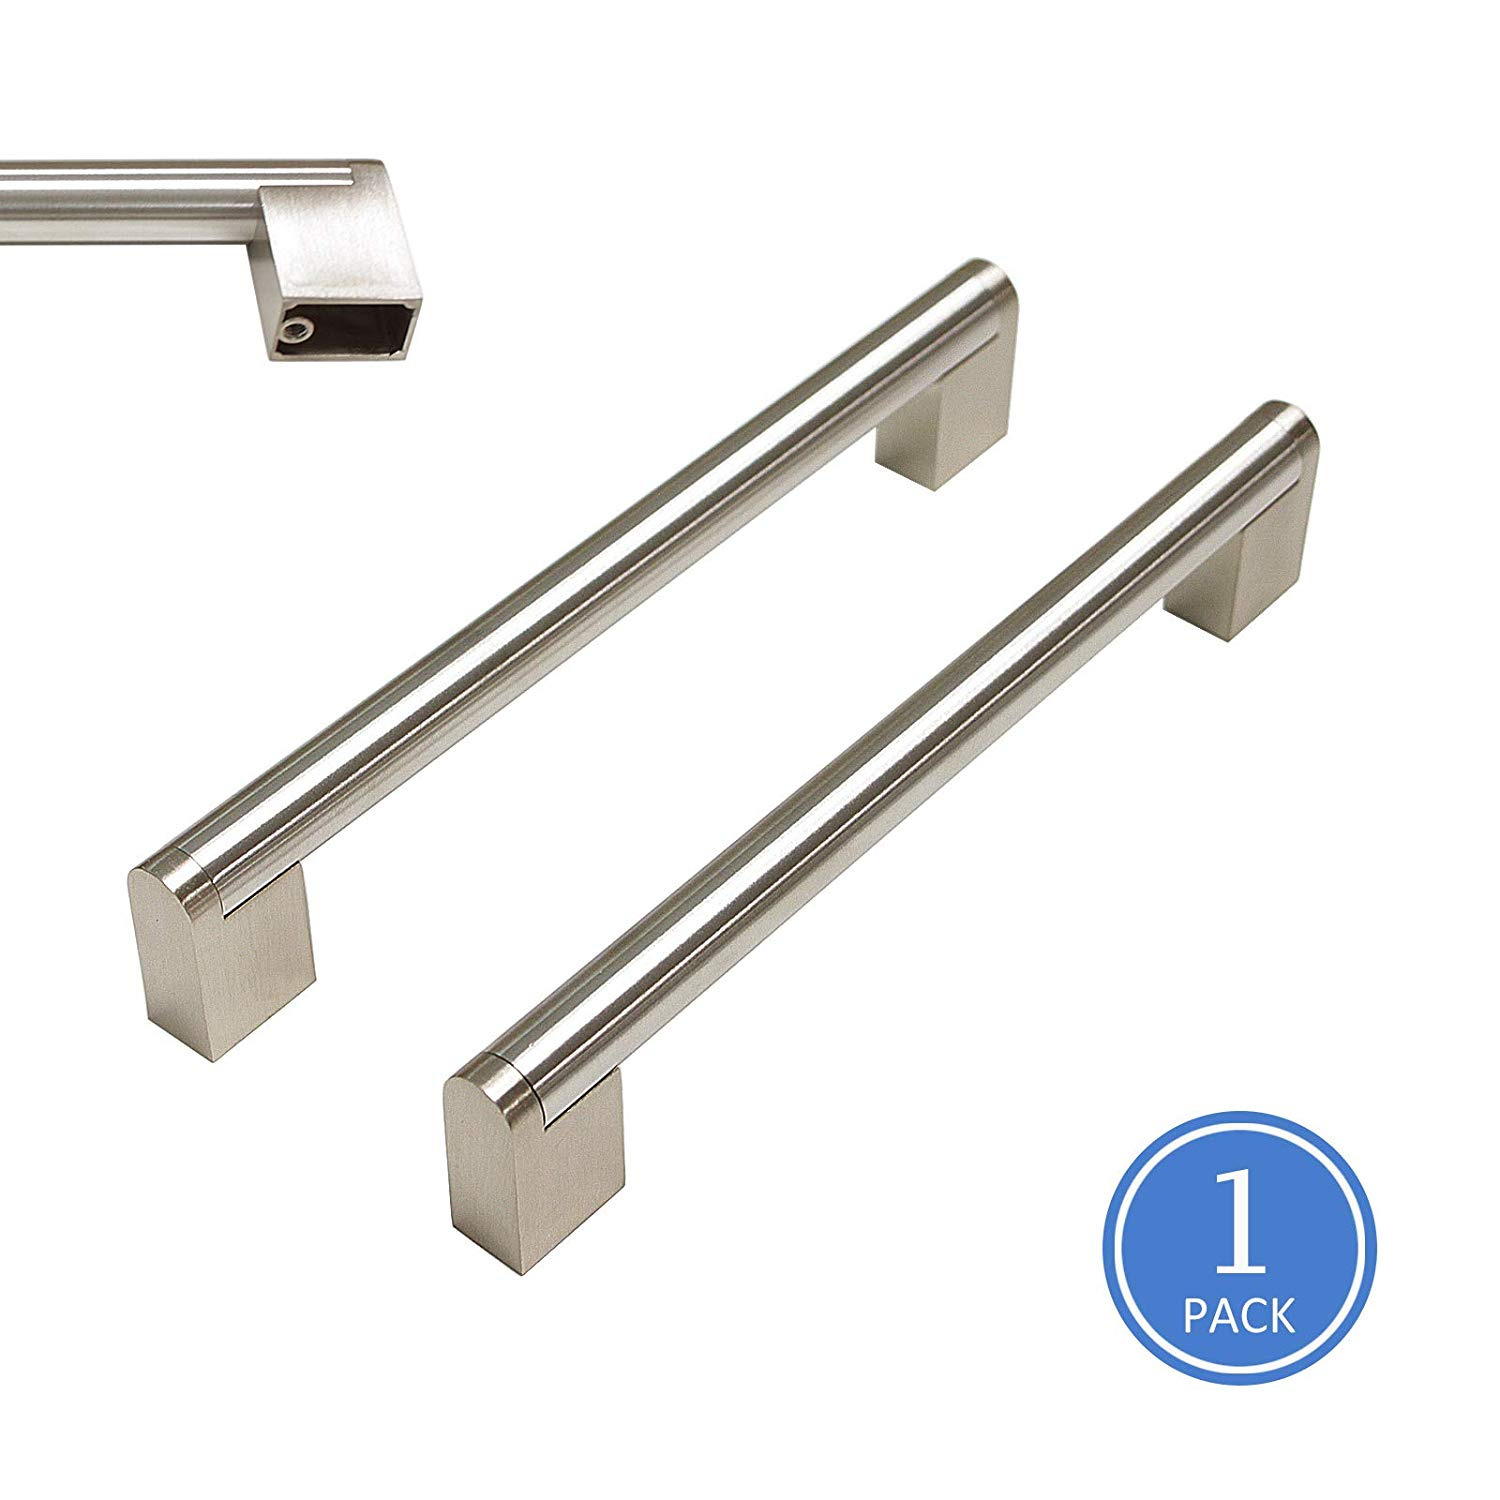 Knobonly Stainless Steel Cabinet Pulls Kitchen Cupoard Handles Boss Bar Style 6-1/4 inch Hole Centers,1 Pack